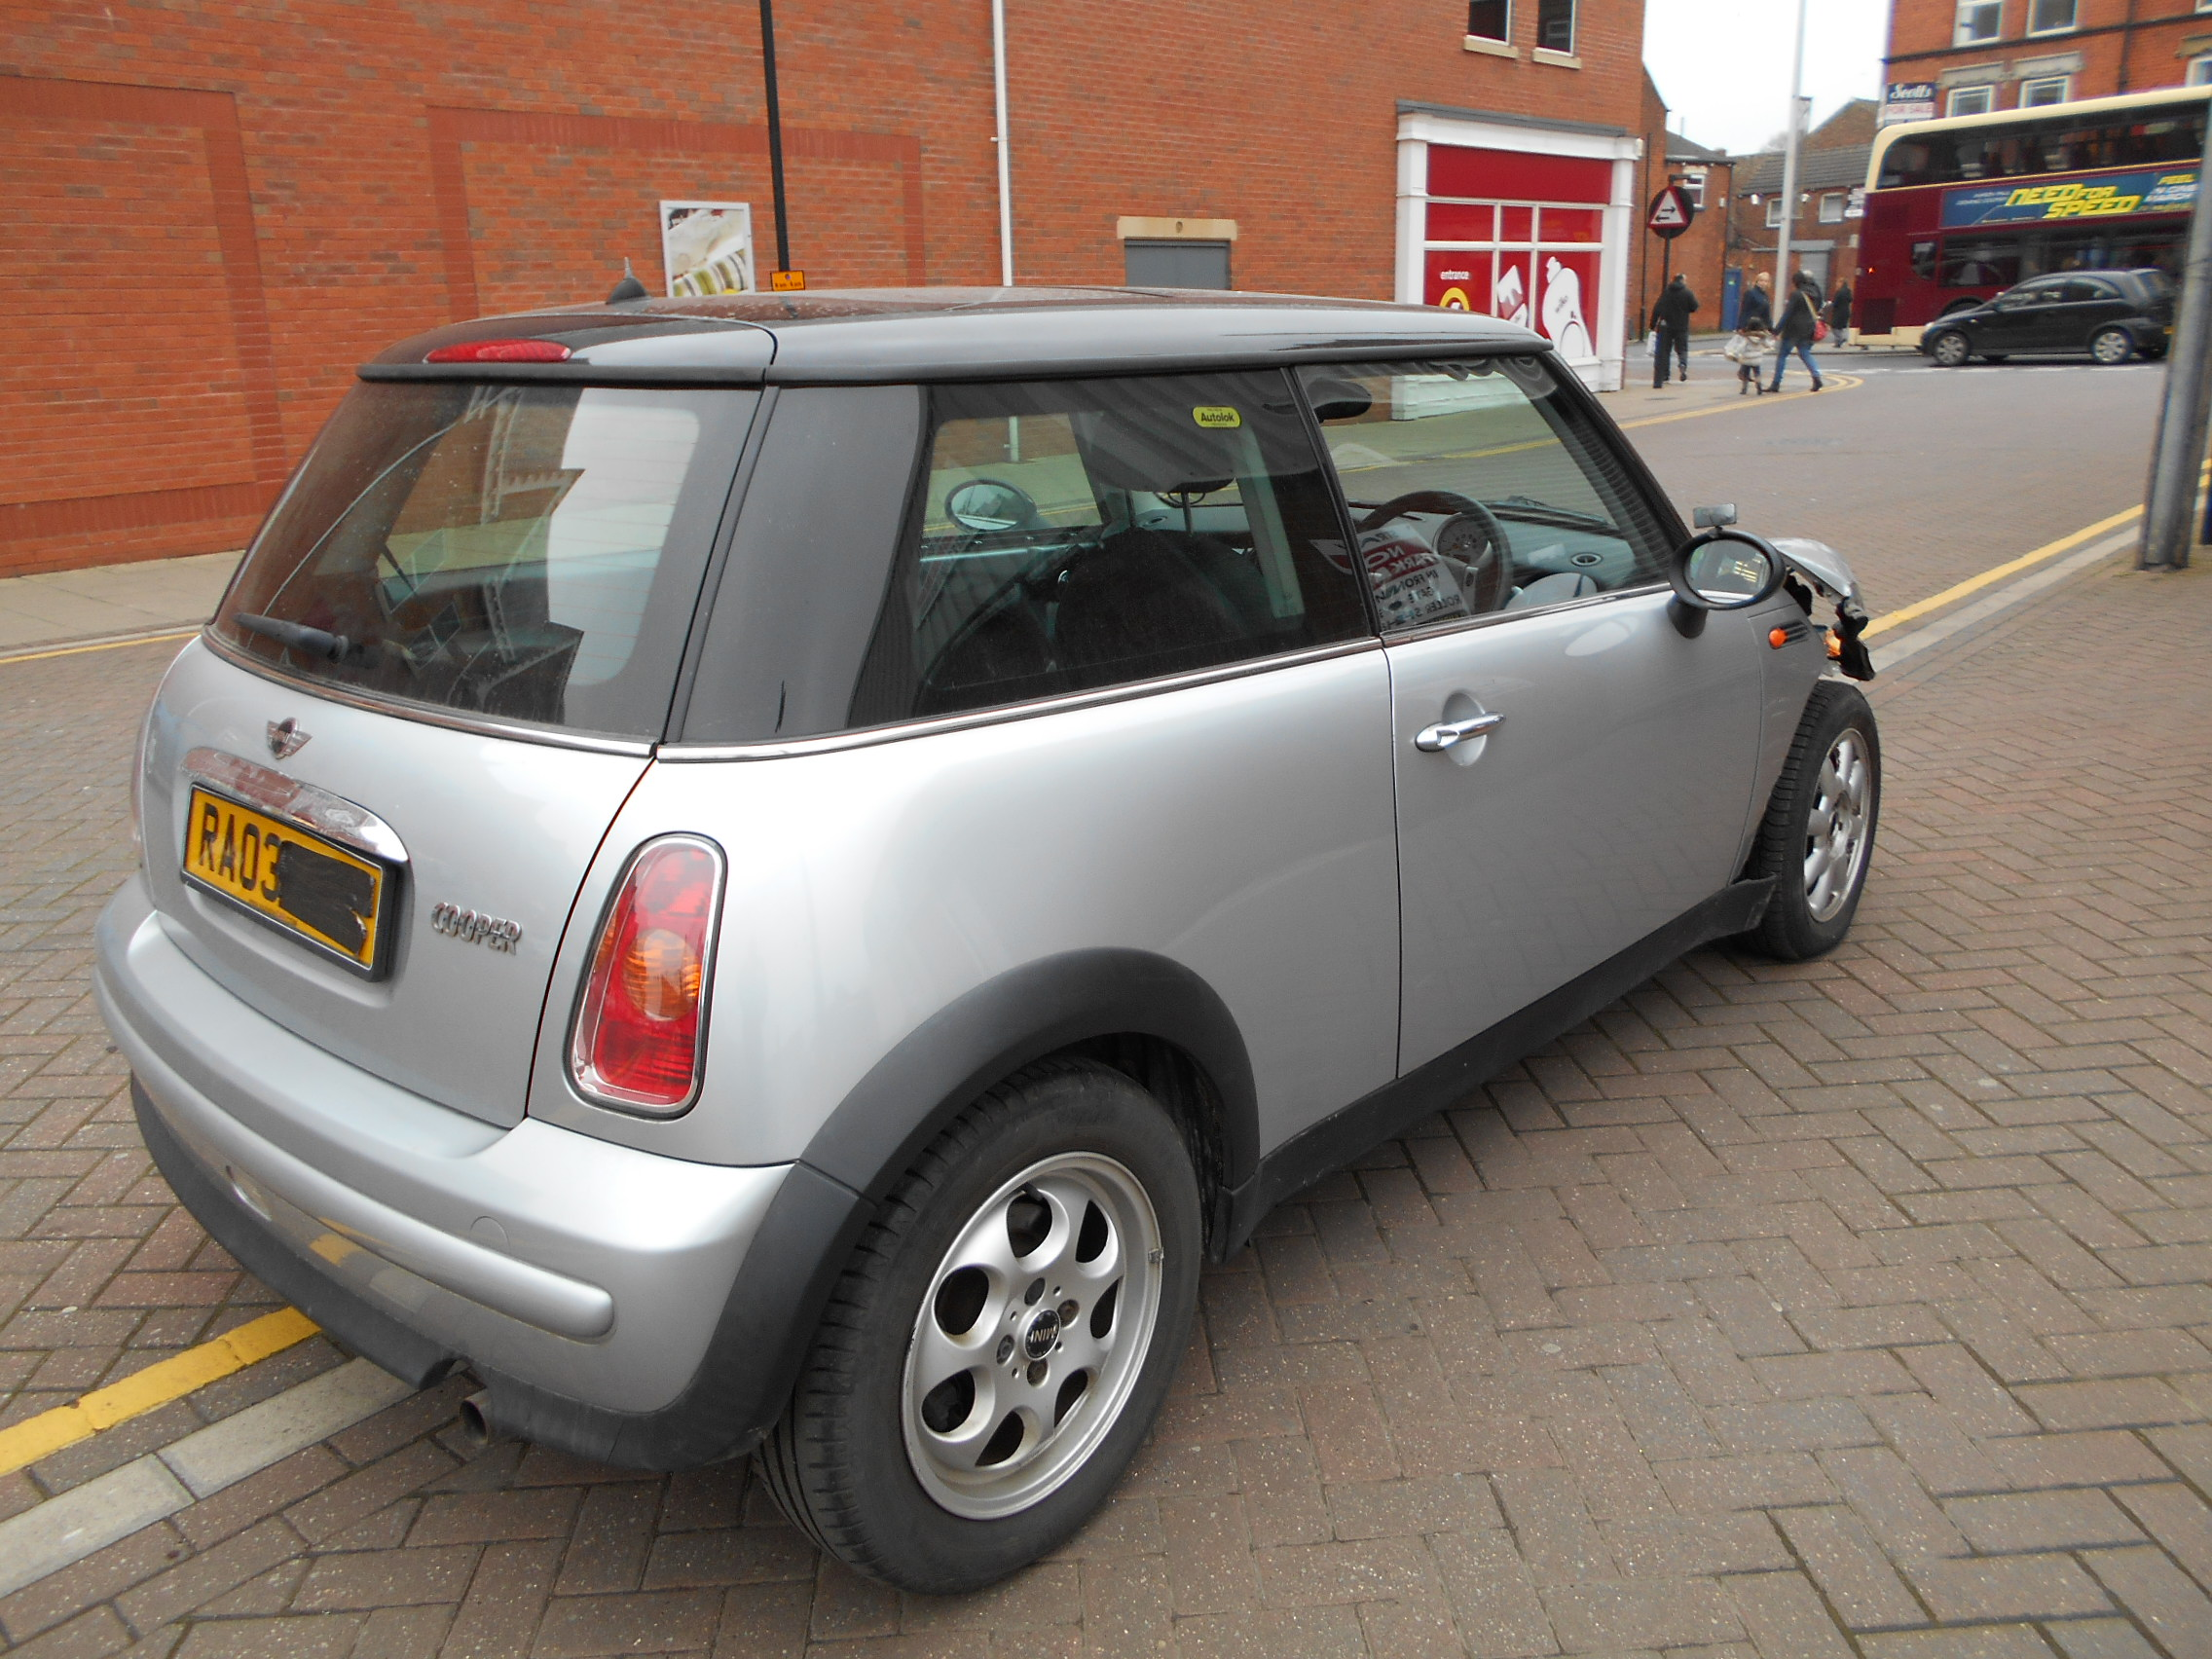 03 Silver Automatic 1.6 BMW Mini Cooper - 4